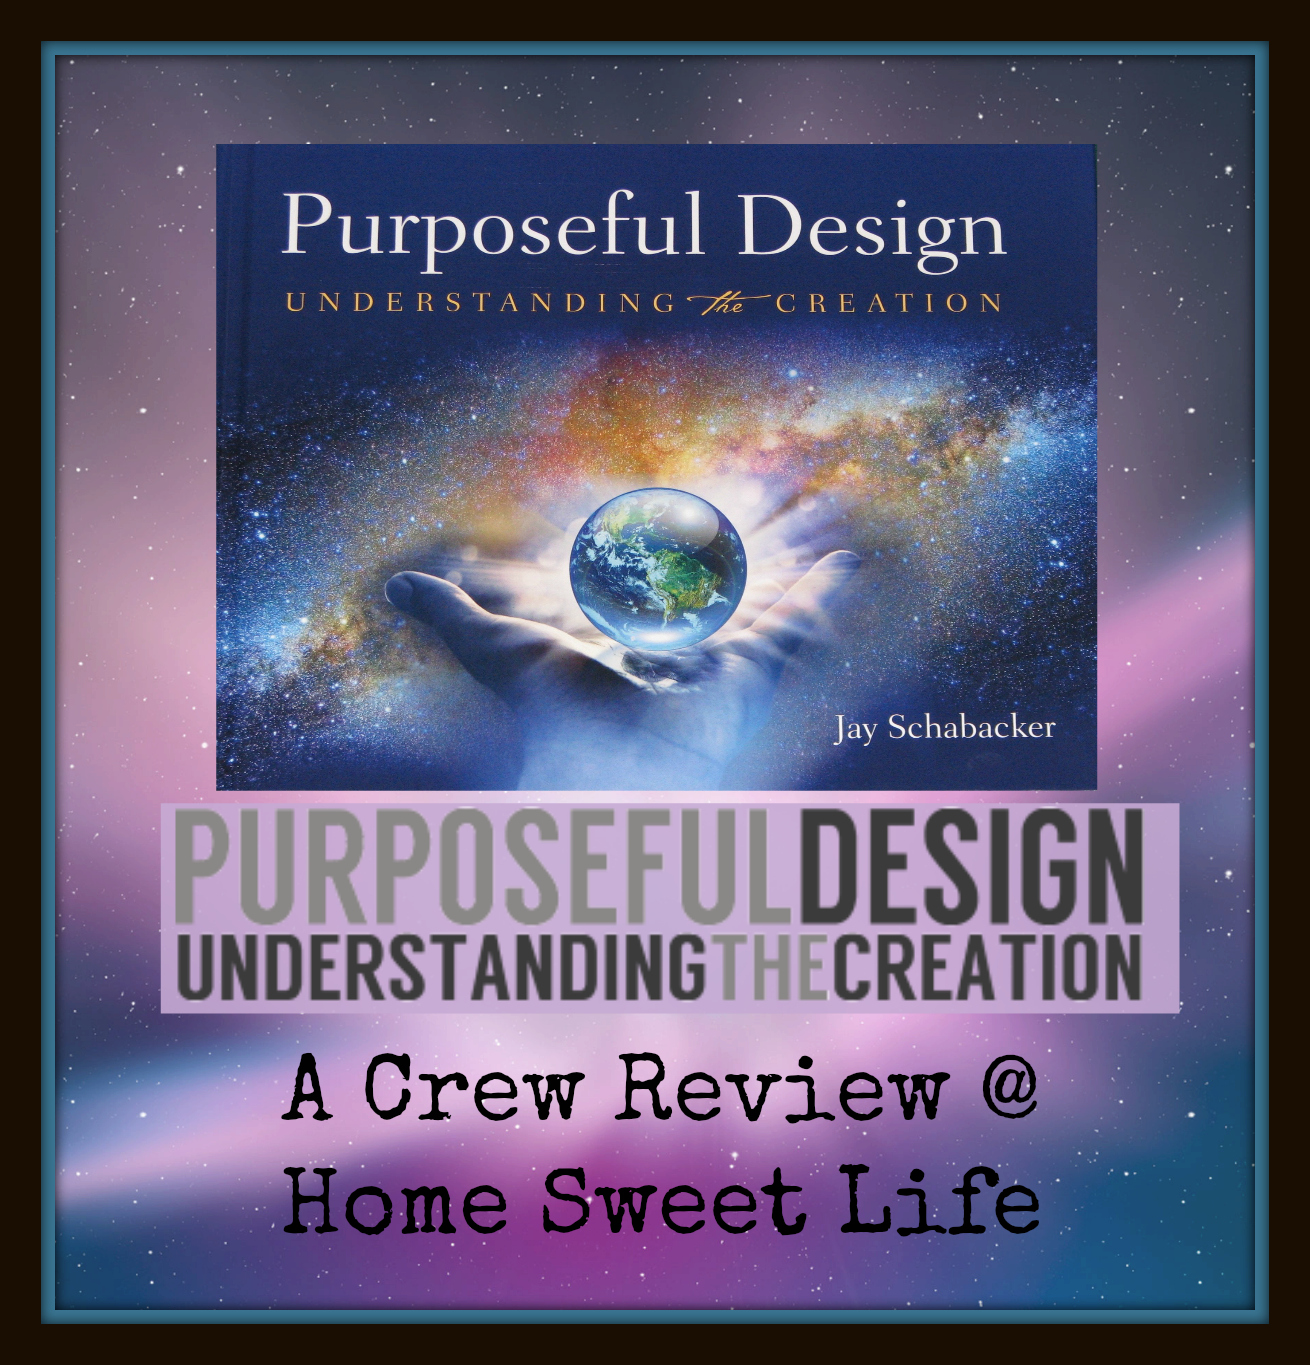 Home Sweet Life: Purposeful Design - a Crew Review